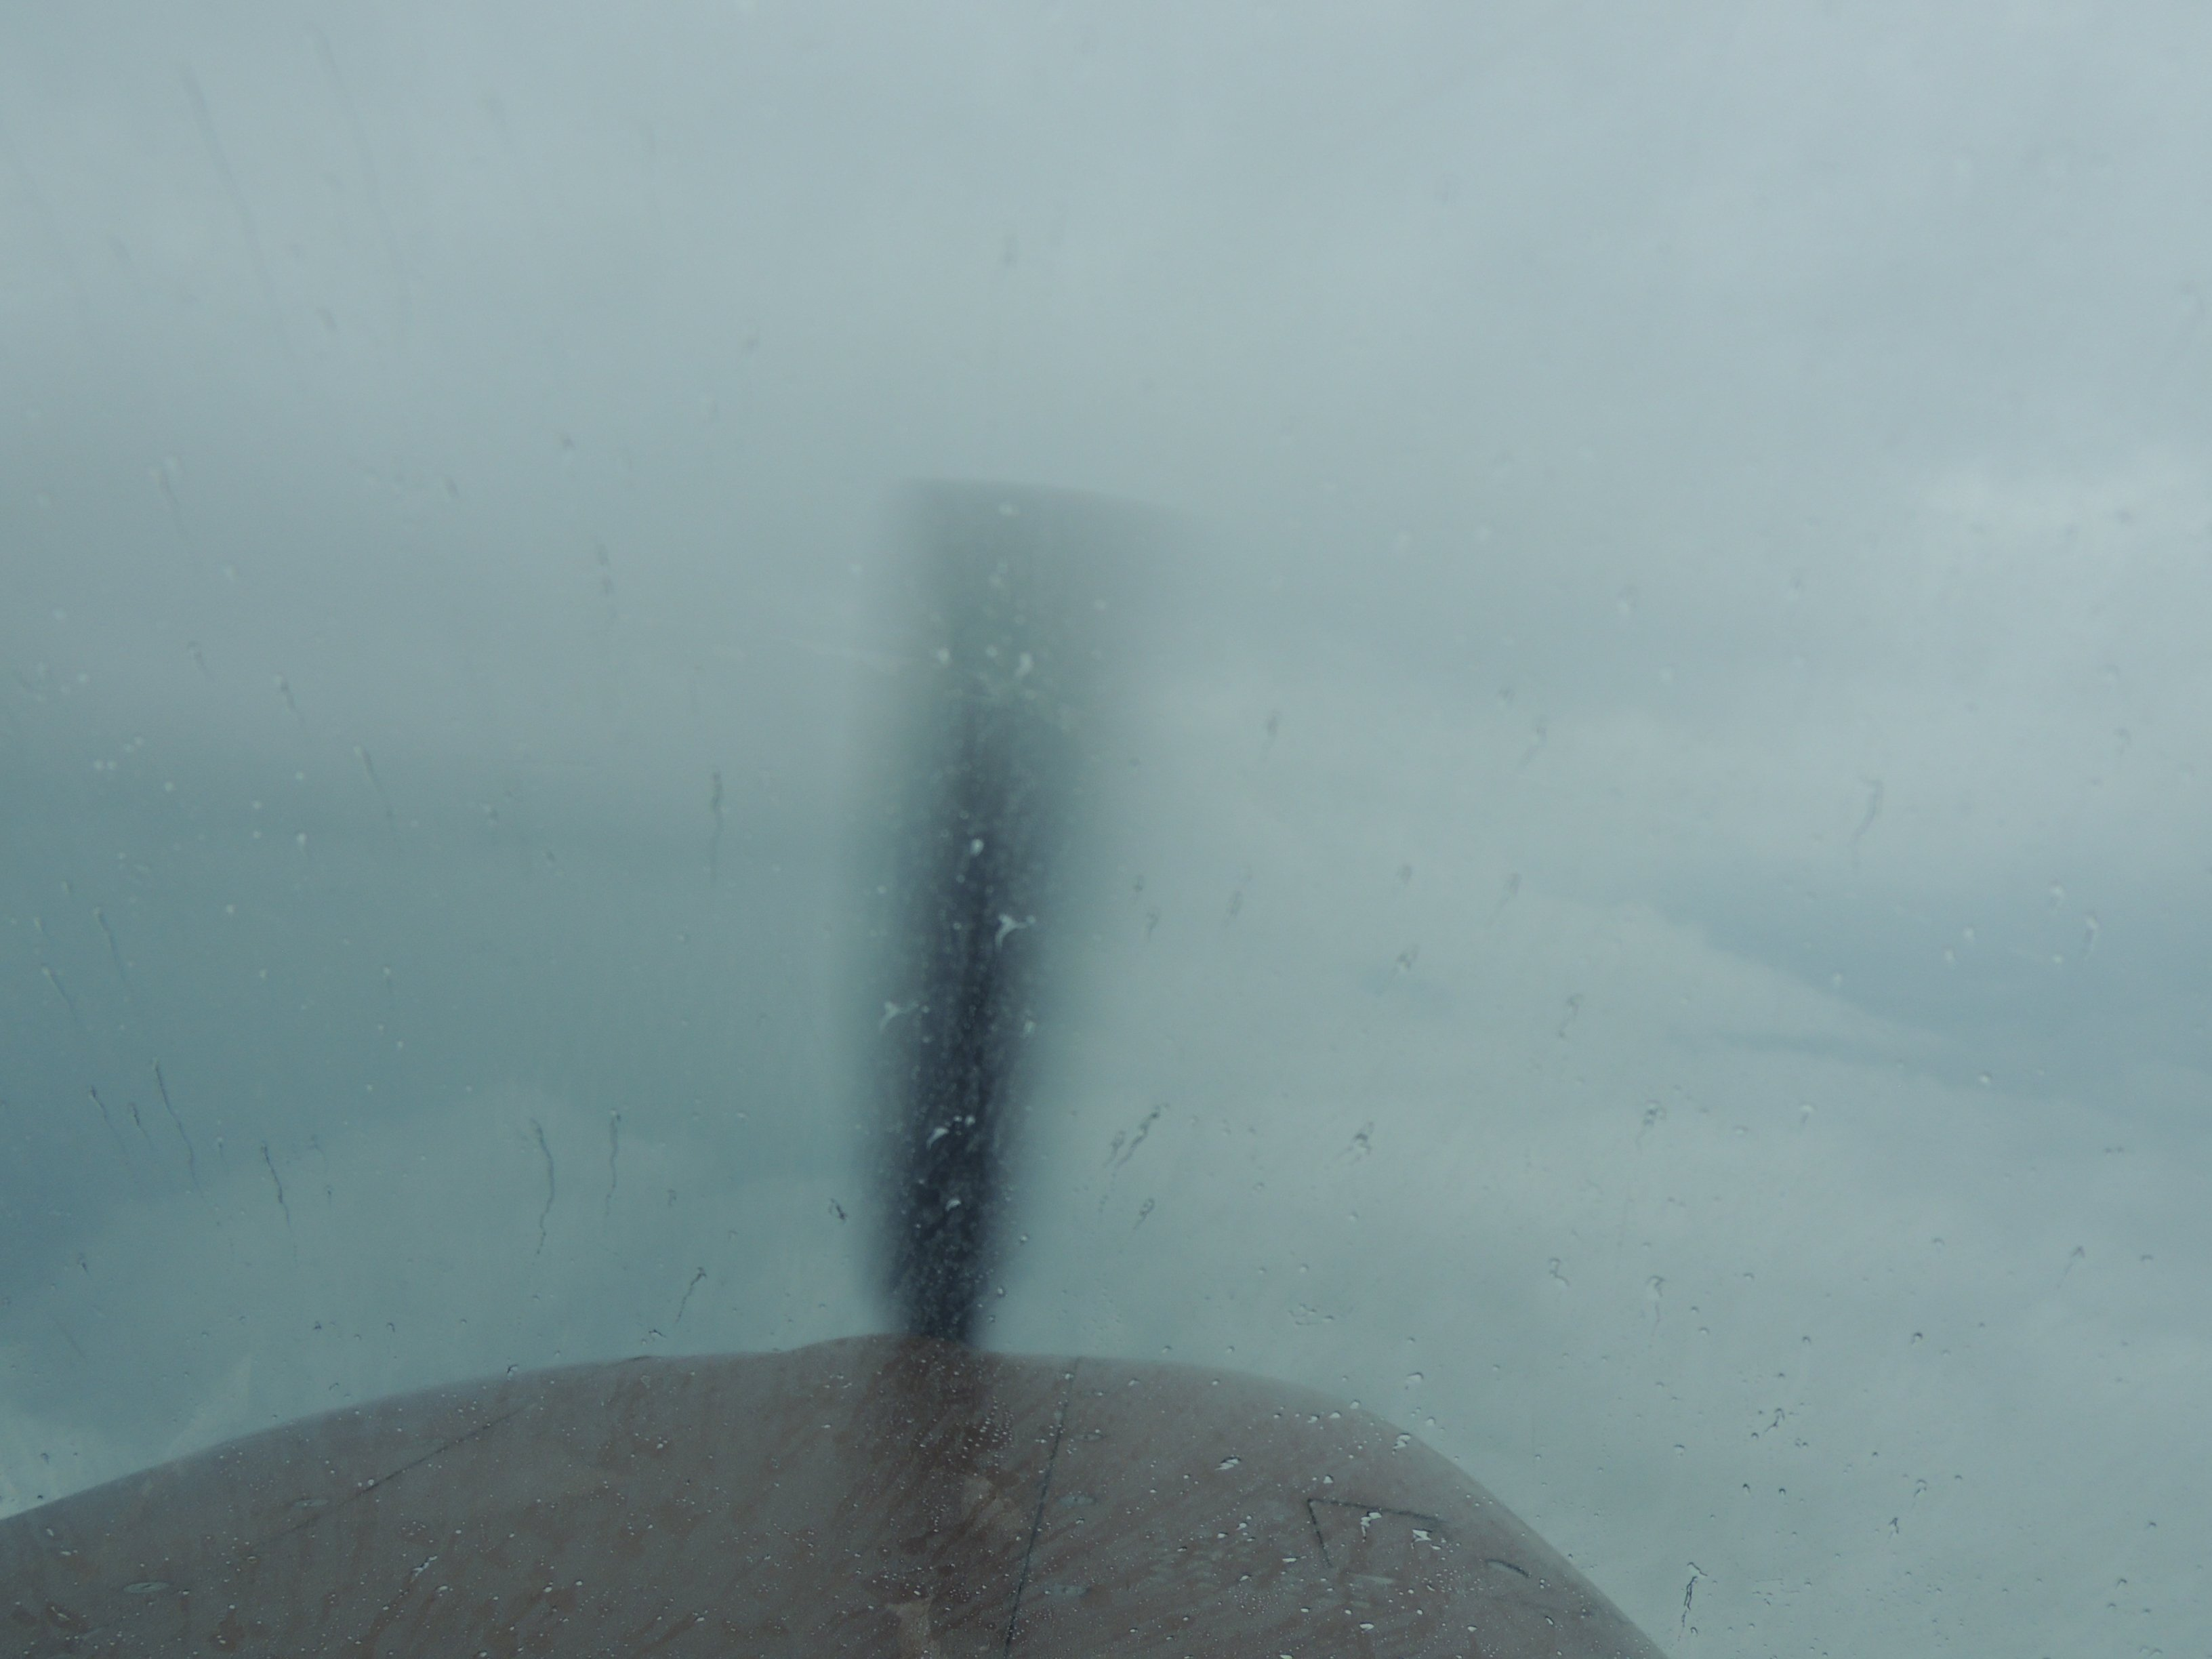 Our view out the front flying thru weather comming home